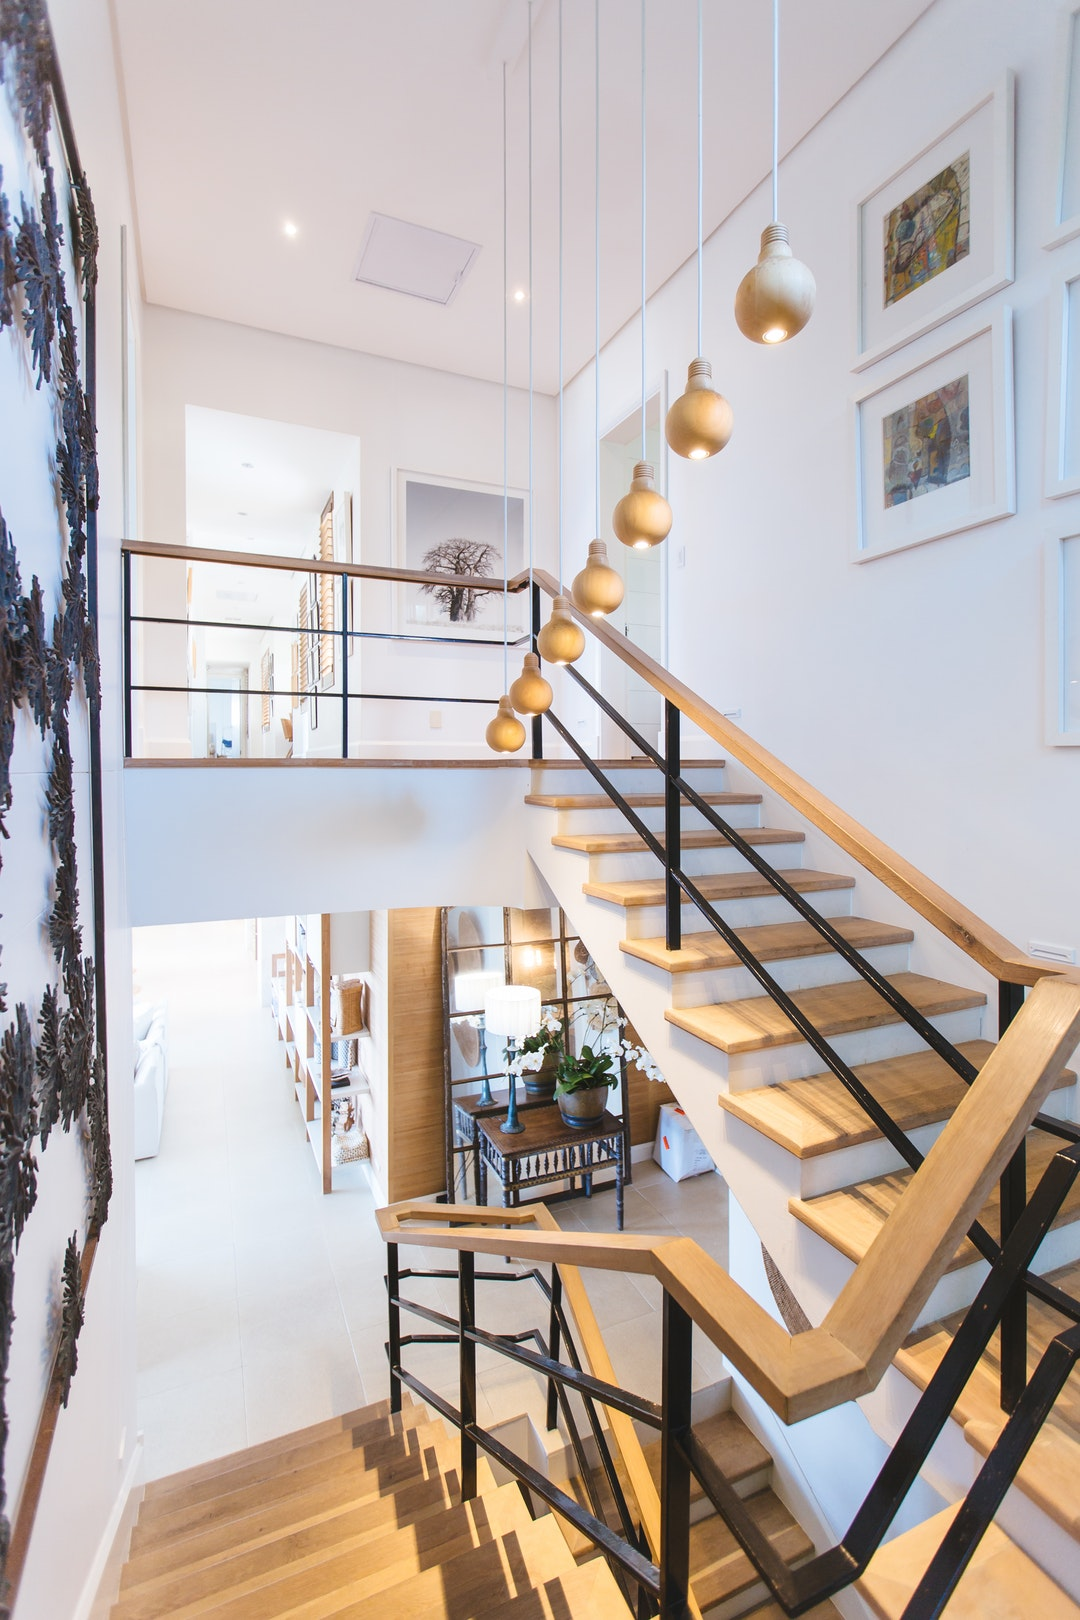 Loft in Space: 8 Great Reasons to Get a Loft Conversion